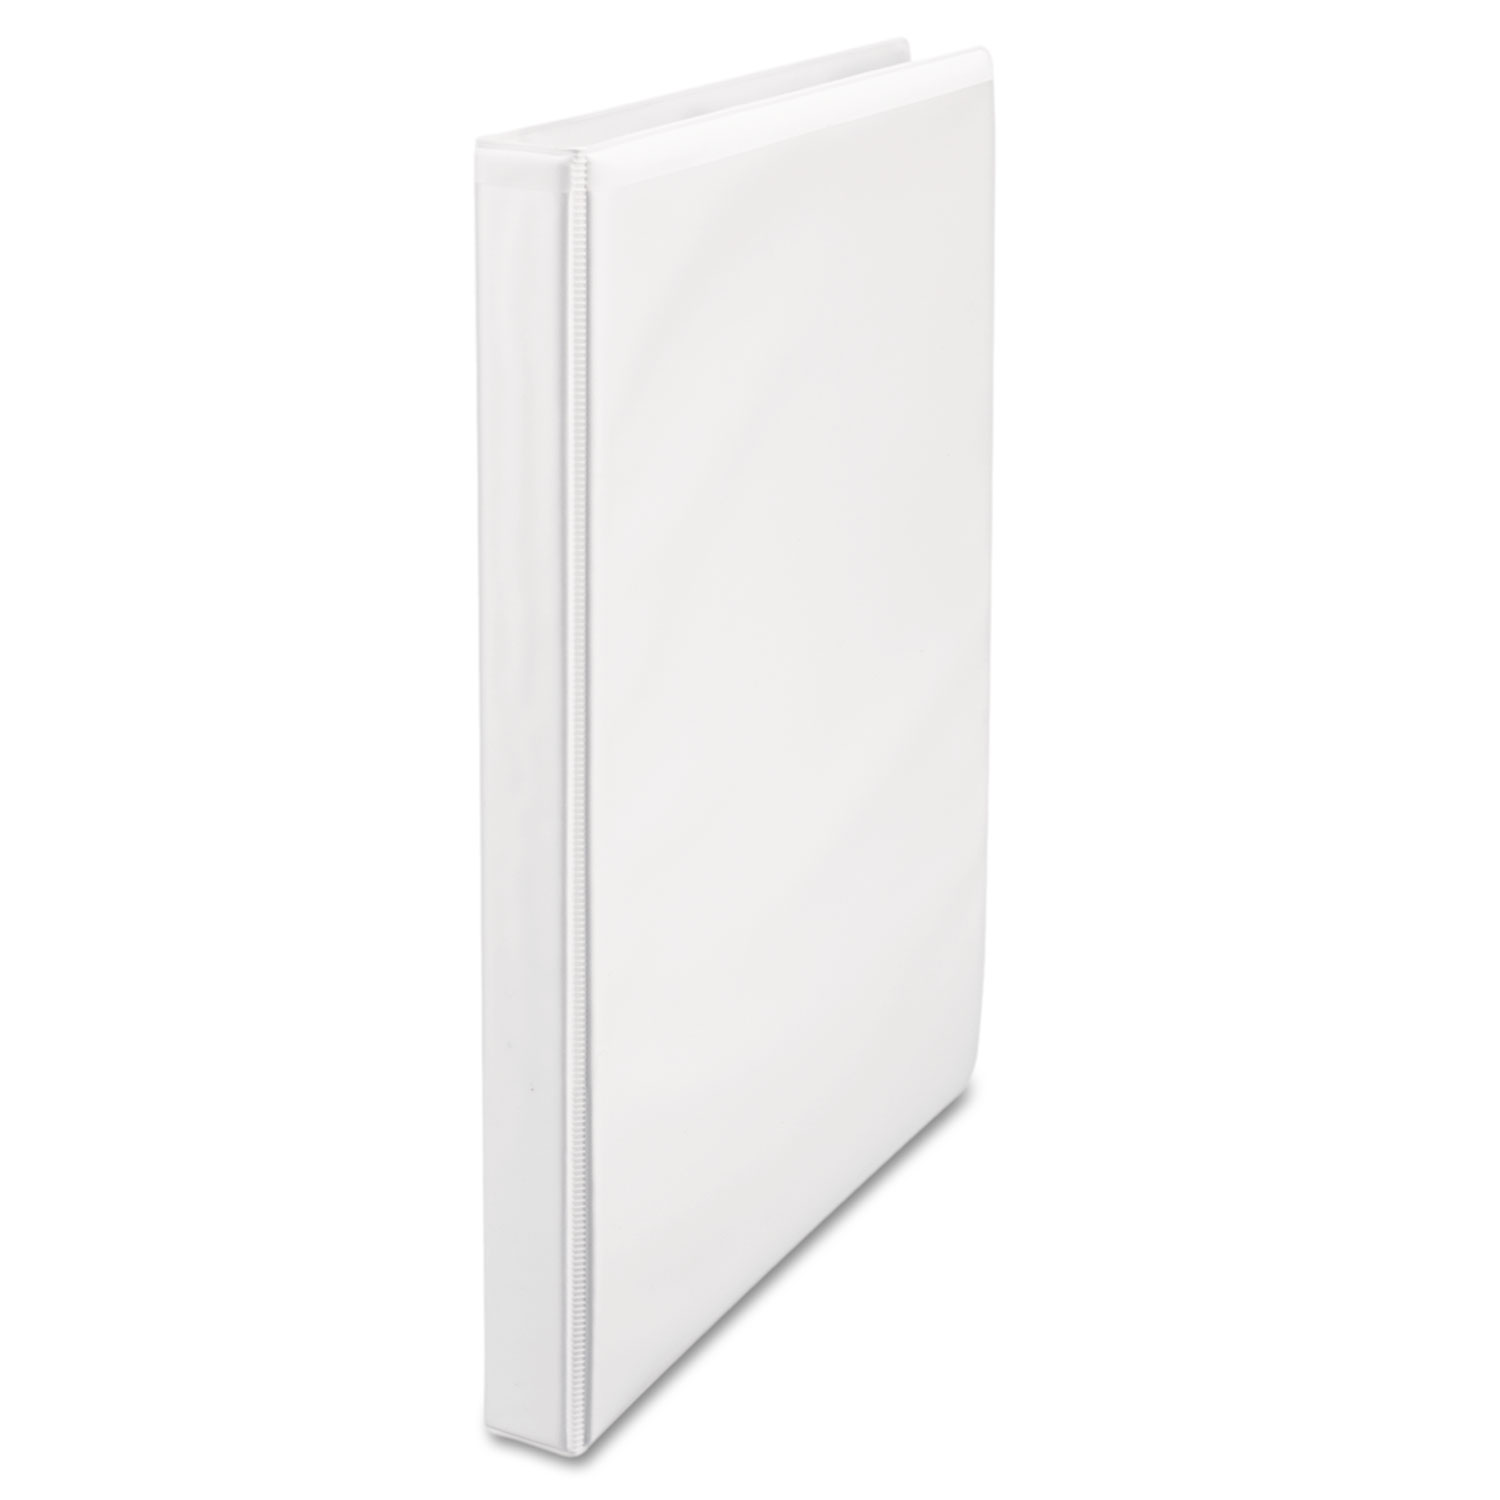 Unv20952 3 Ring View Binders By Universal